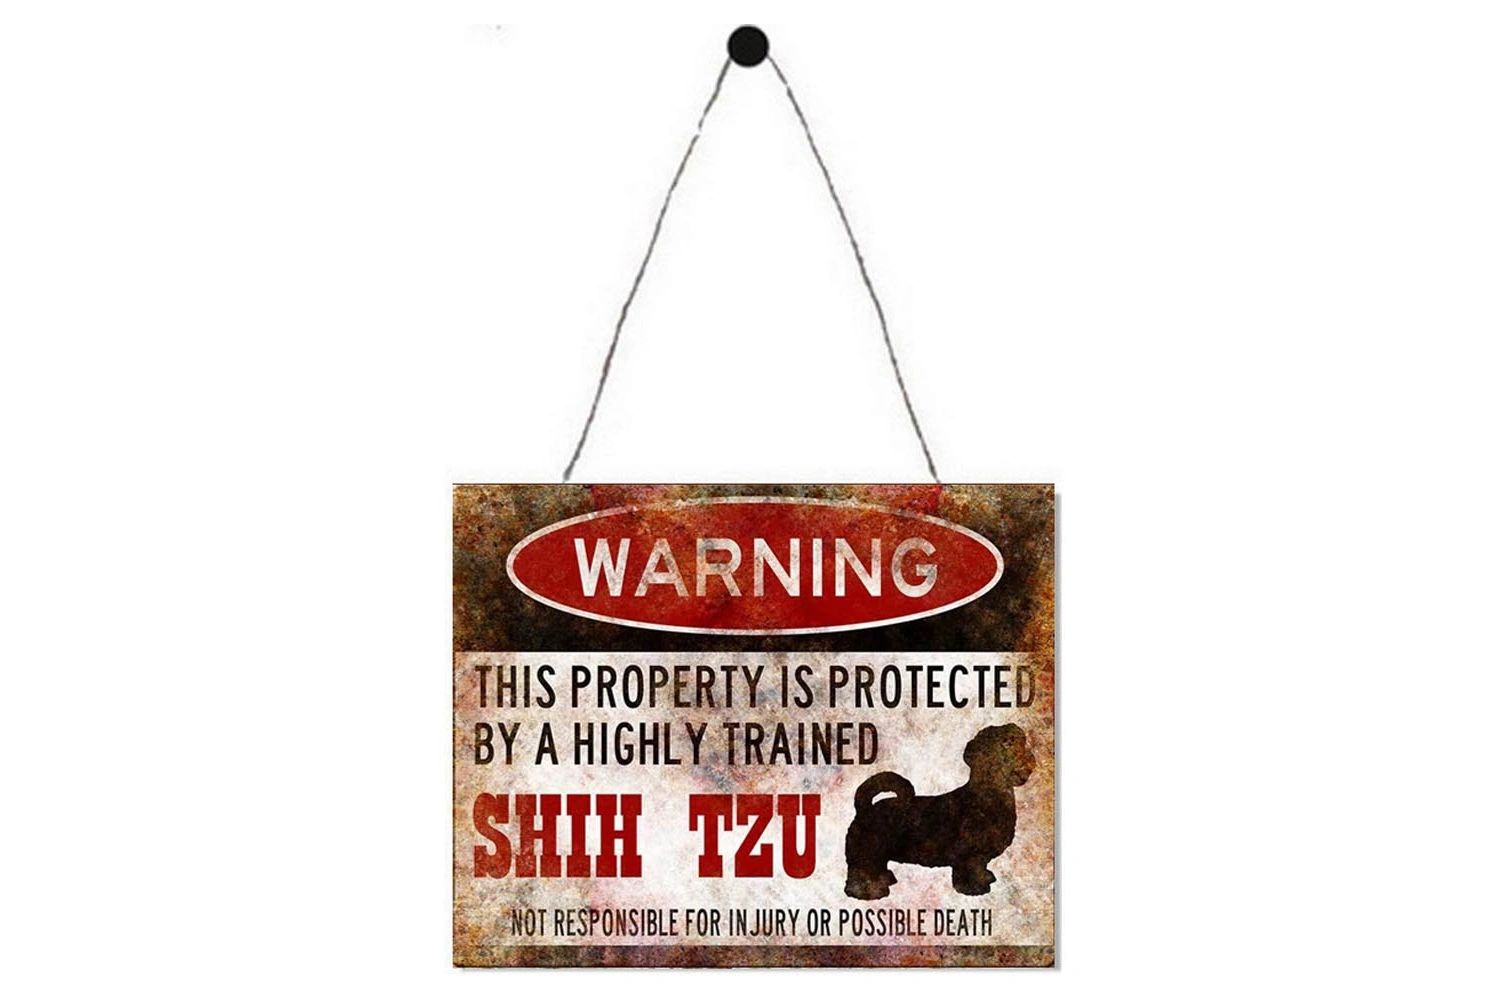 Warning property is protected by a highly trained shih tzu not responsible for injury possible death